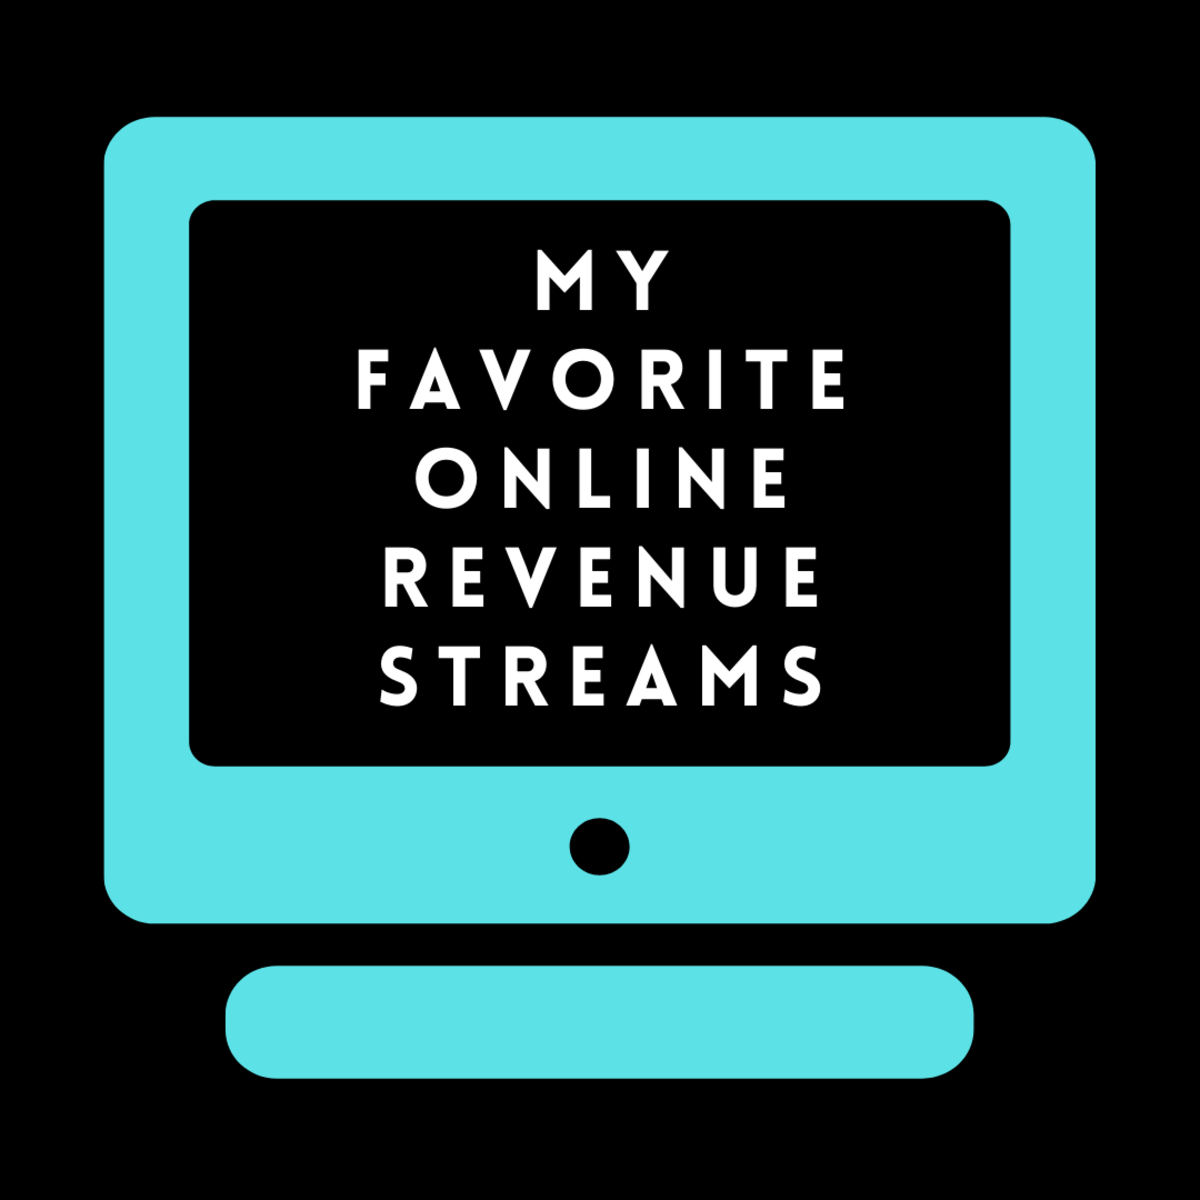 These online revenue streams will help you earn extra cash this year!